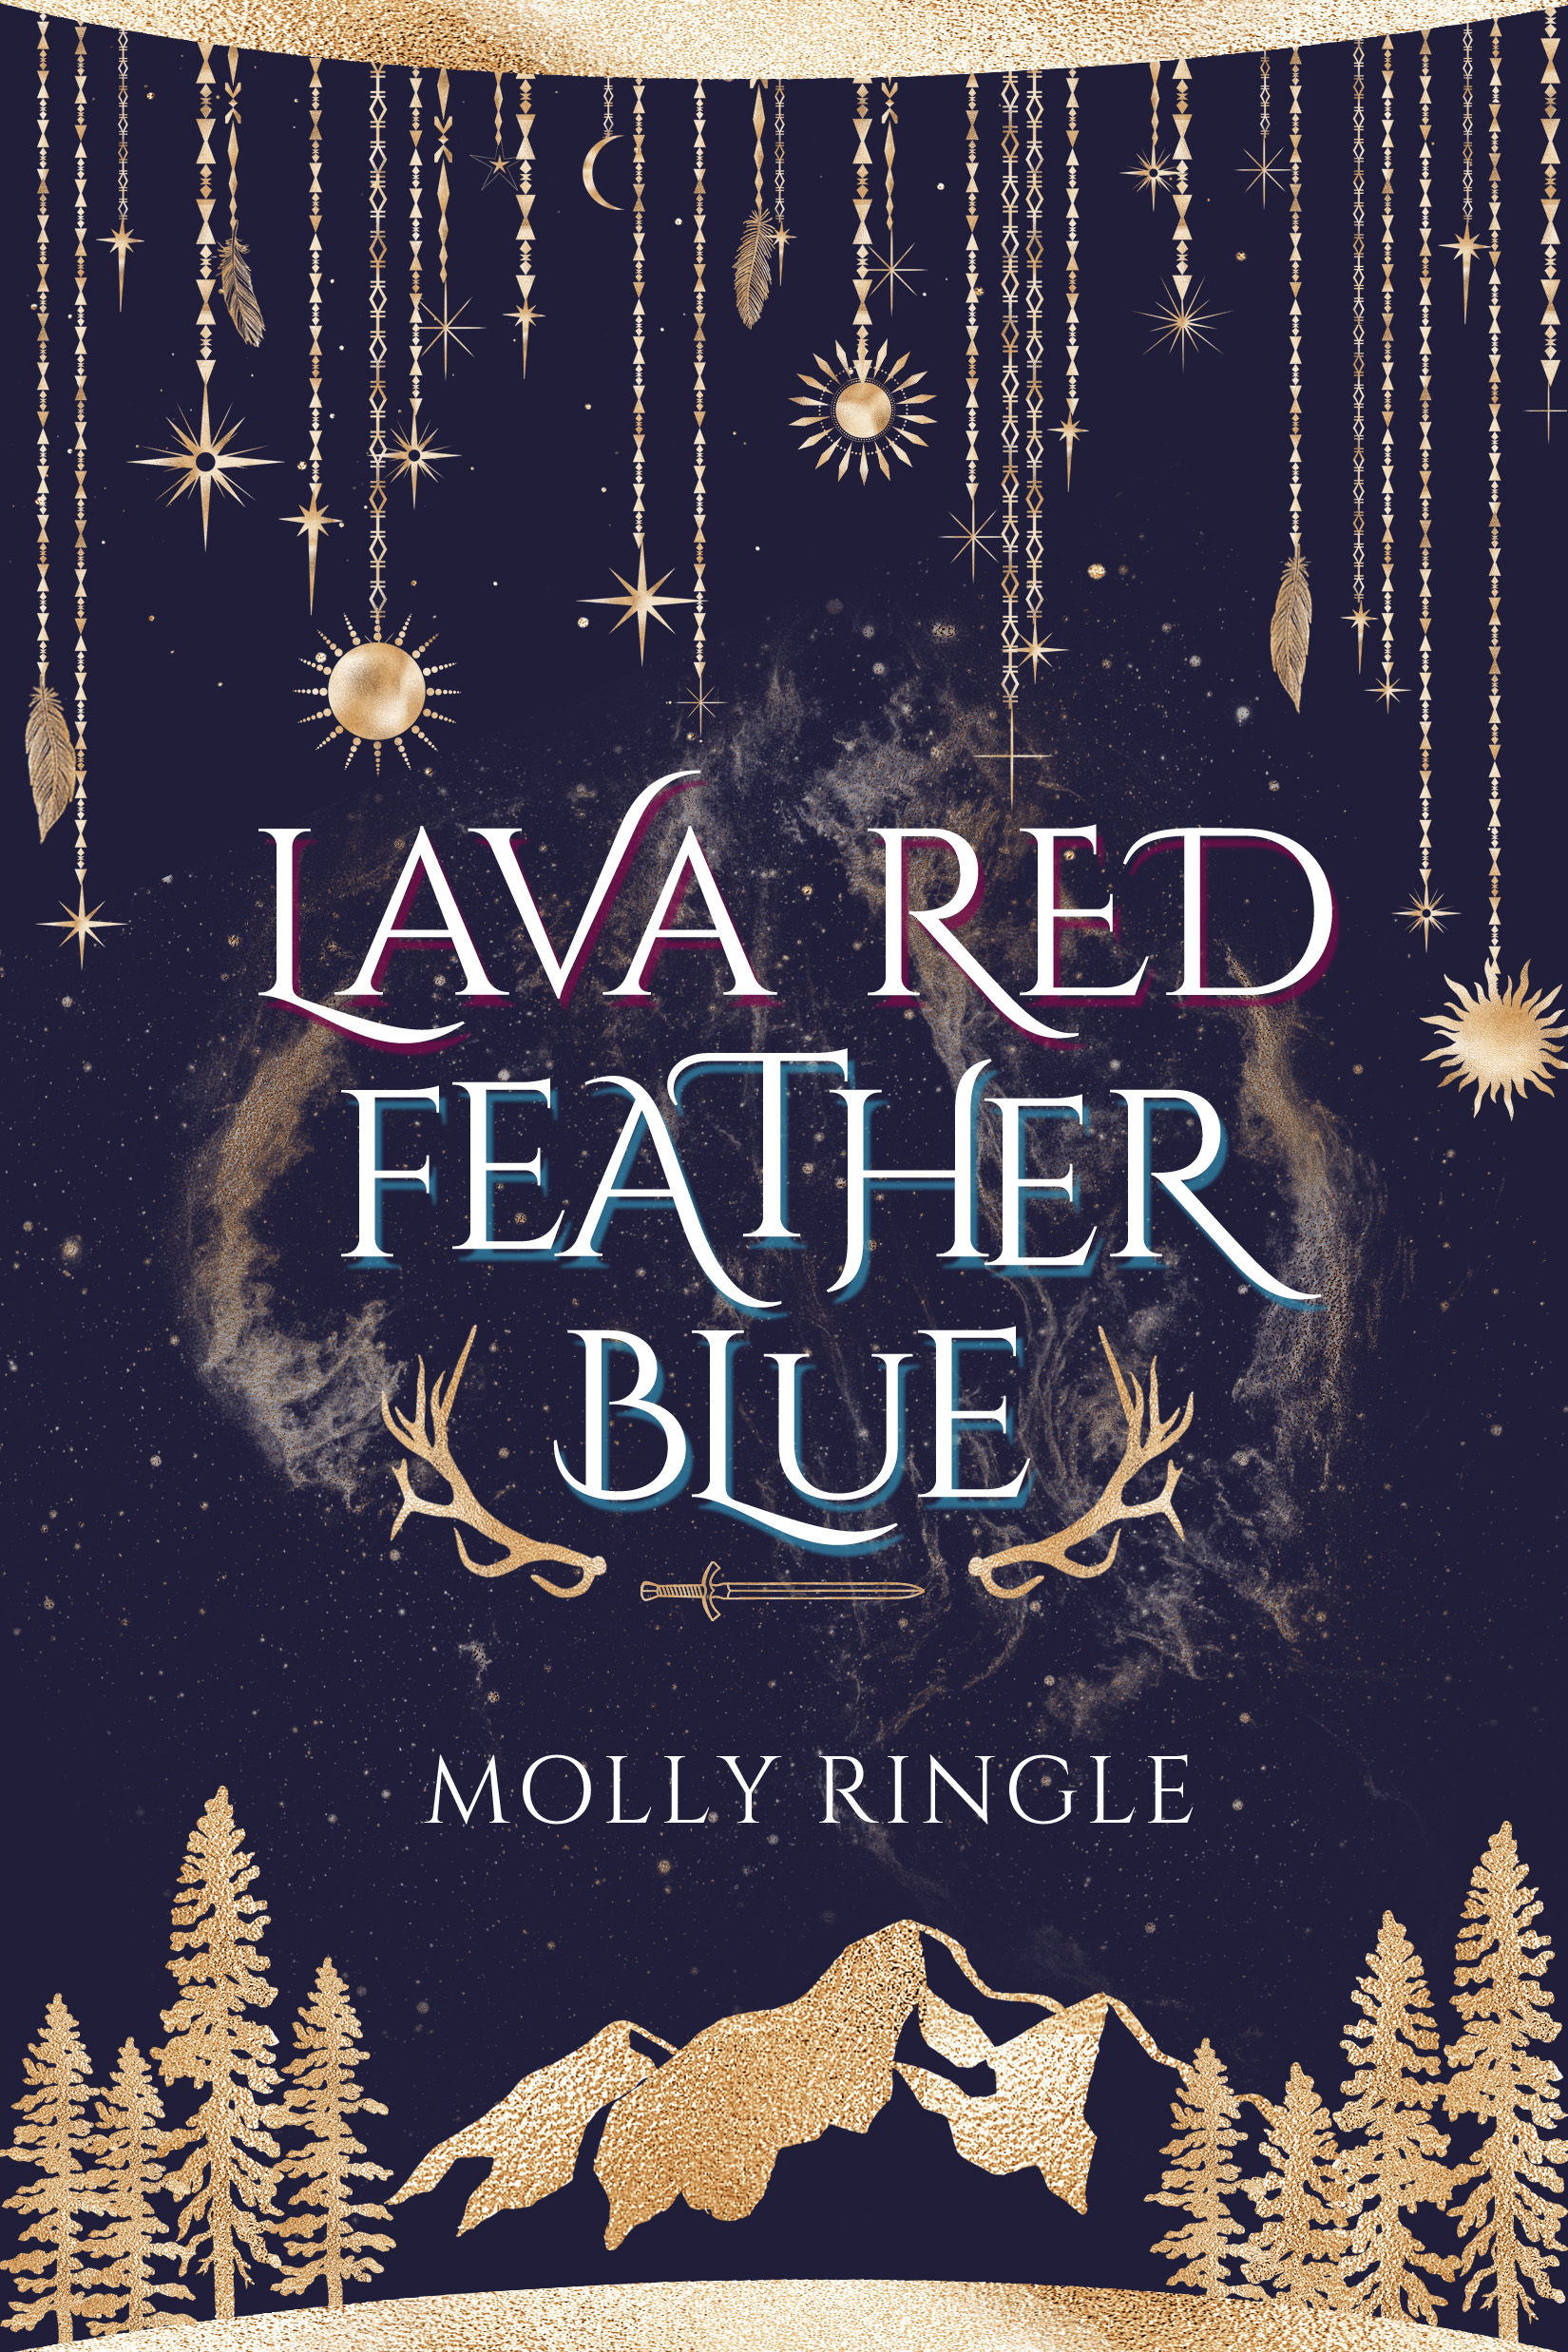 Cover of Lava Red Feather Blue by Molly Ringle: mountains, starry sky, jewels, trees